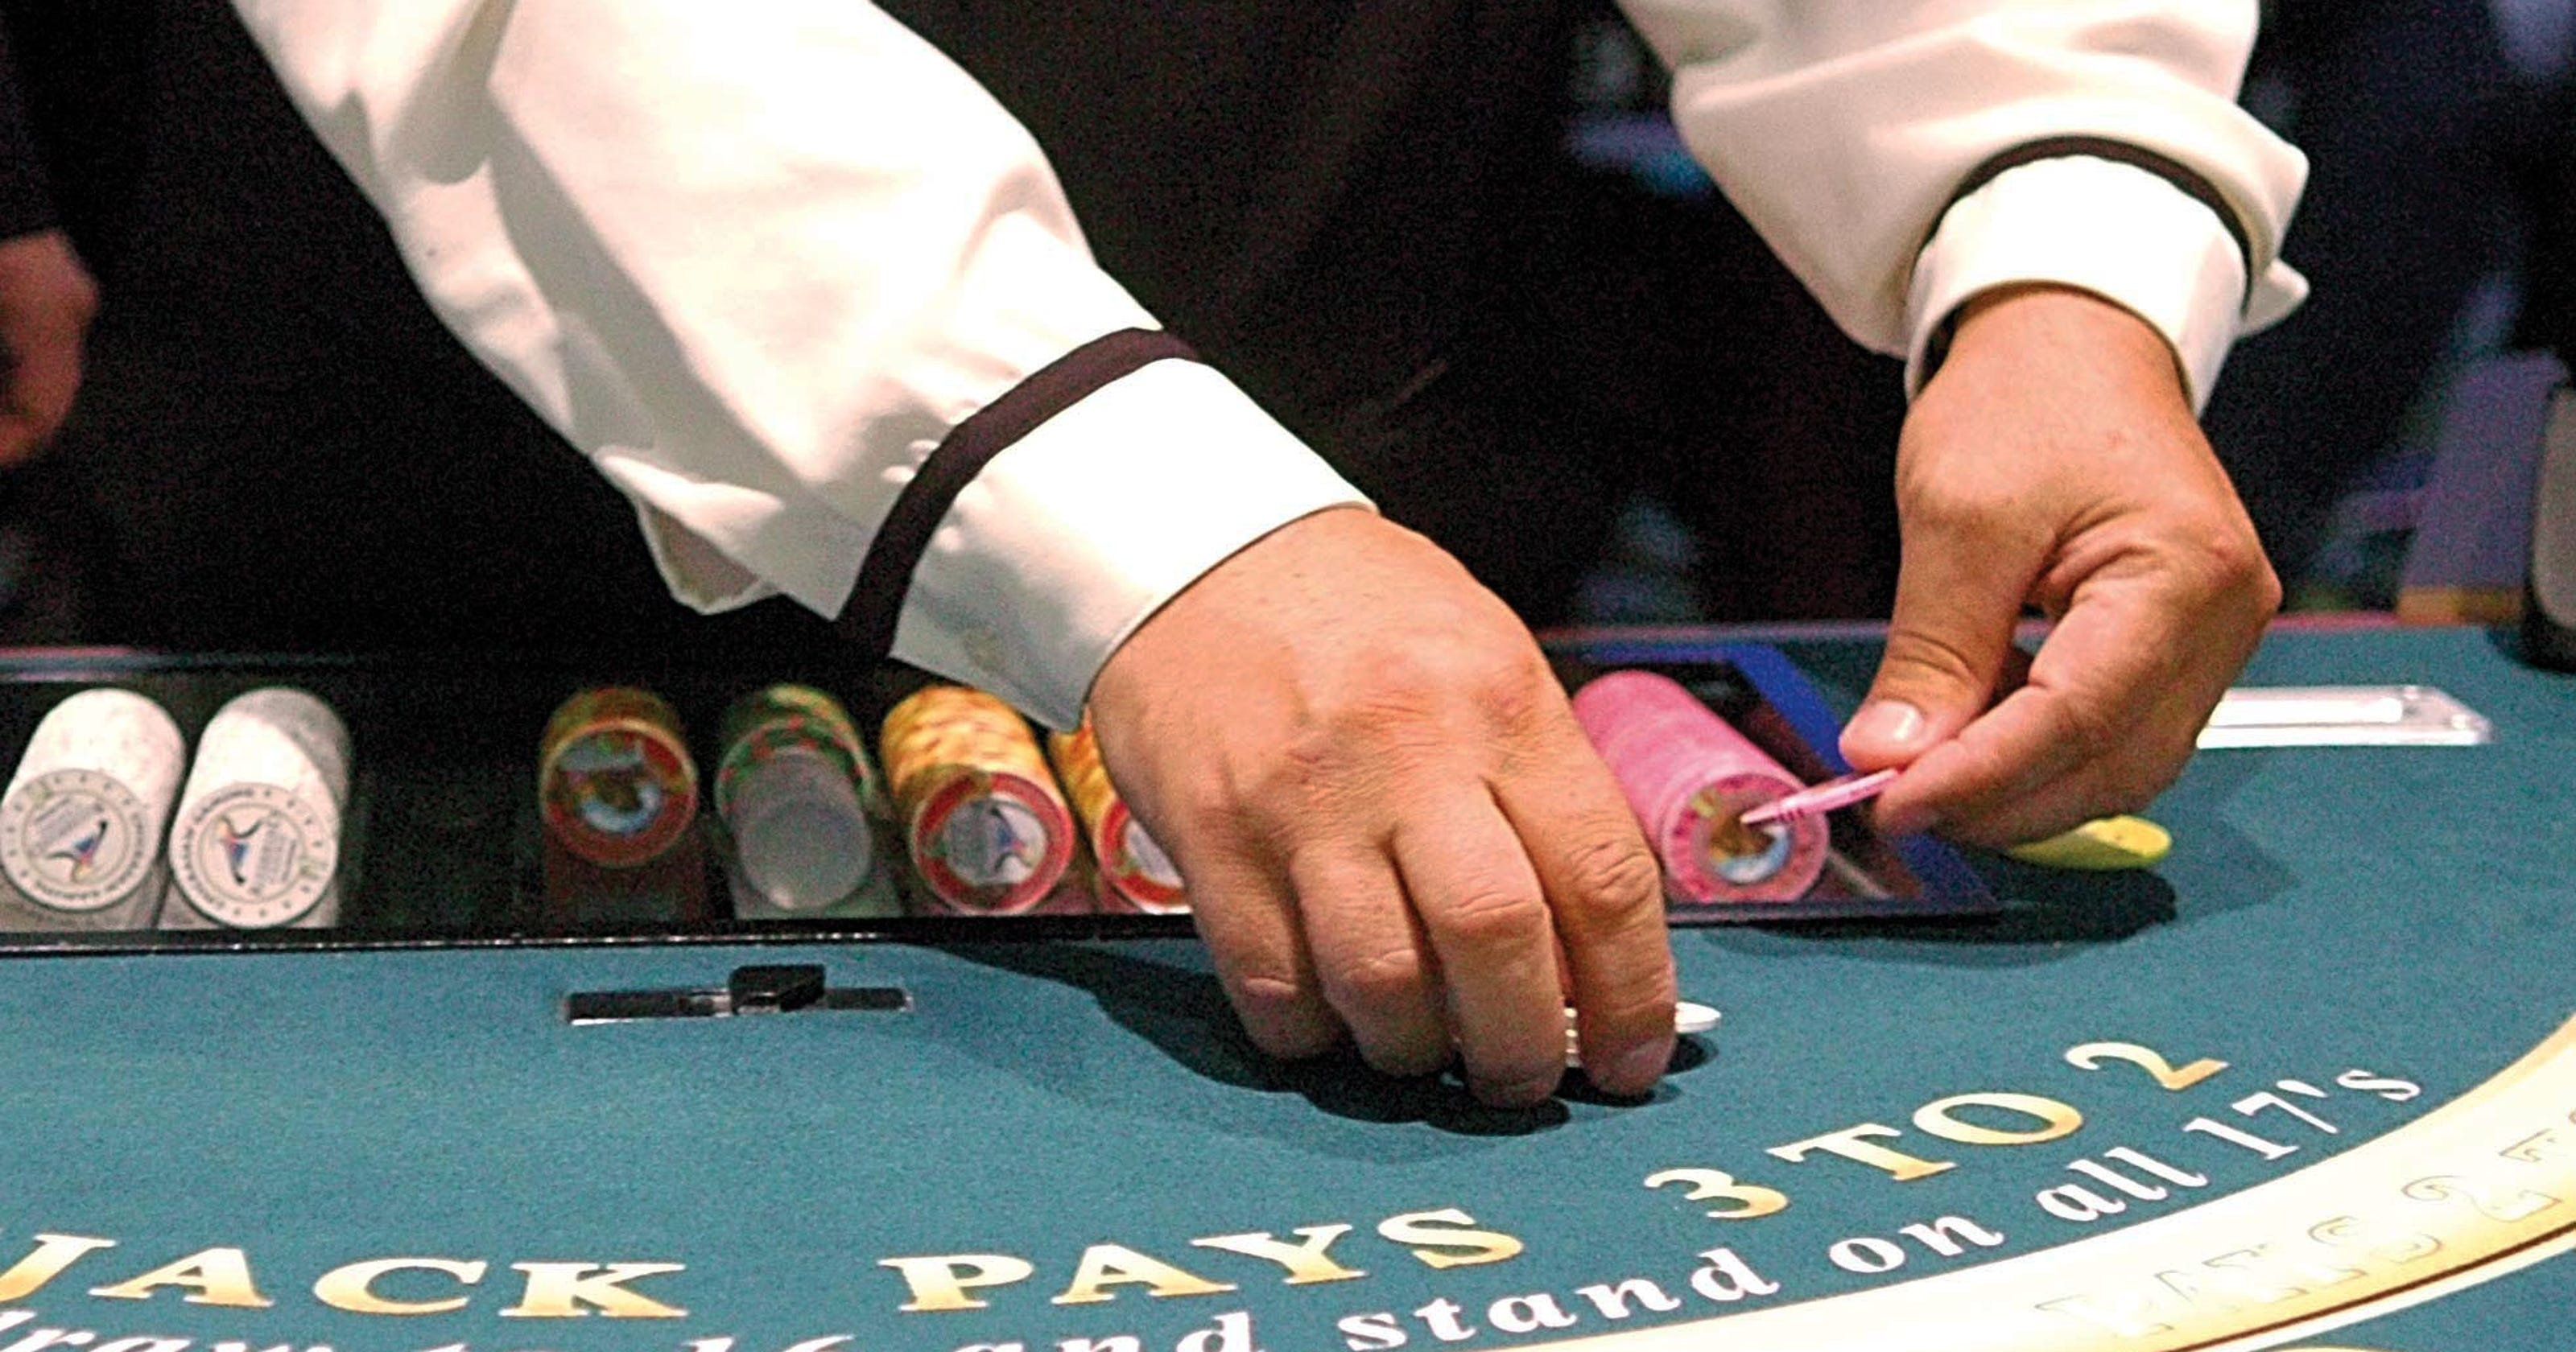 How gamblers manage to get lucky streaks